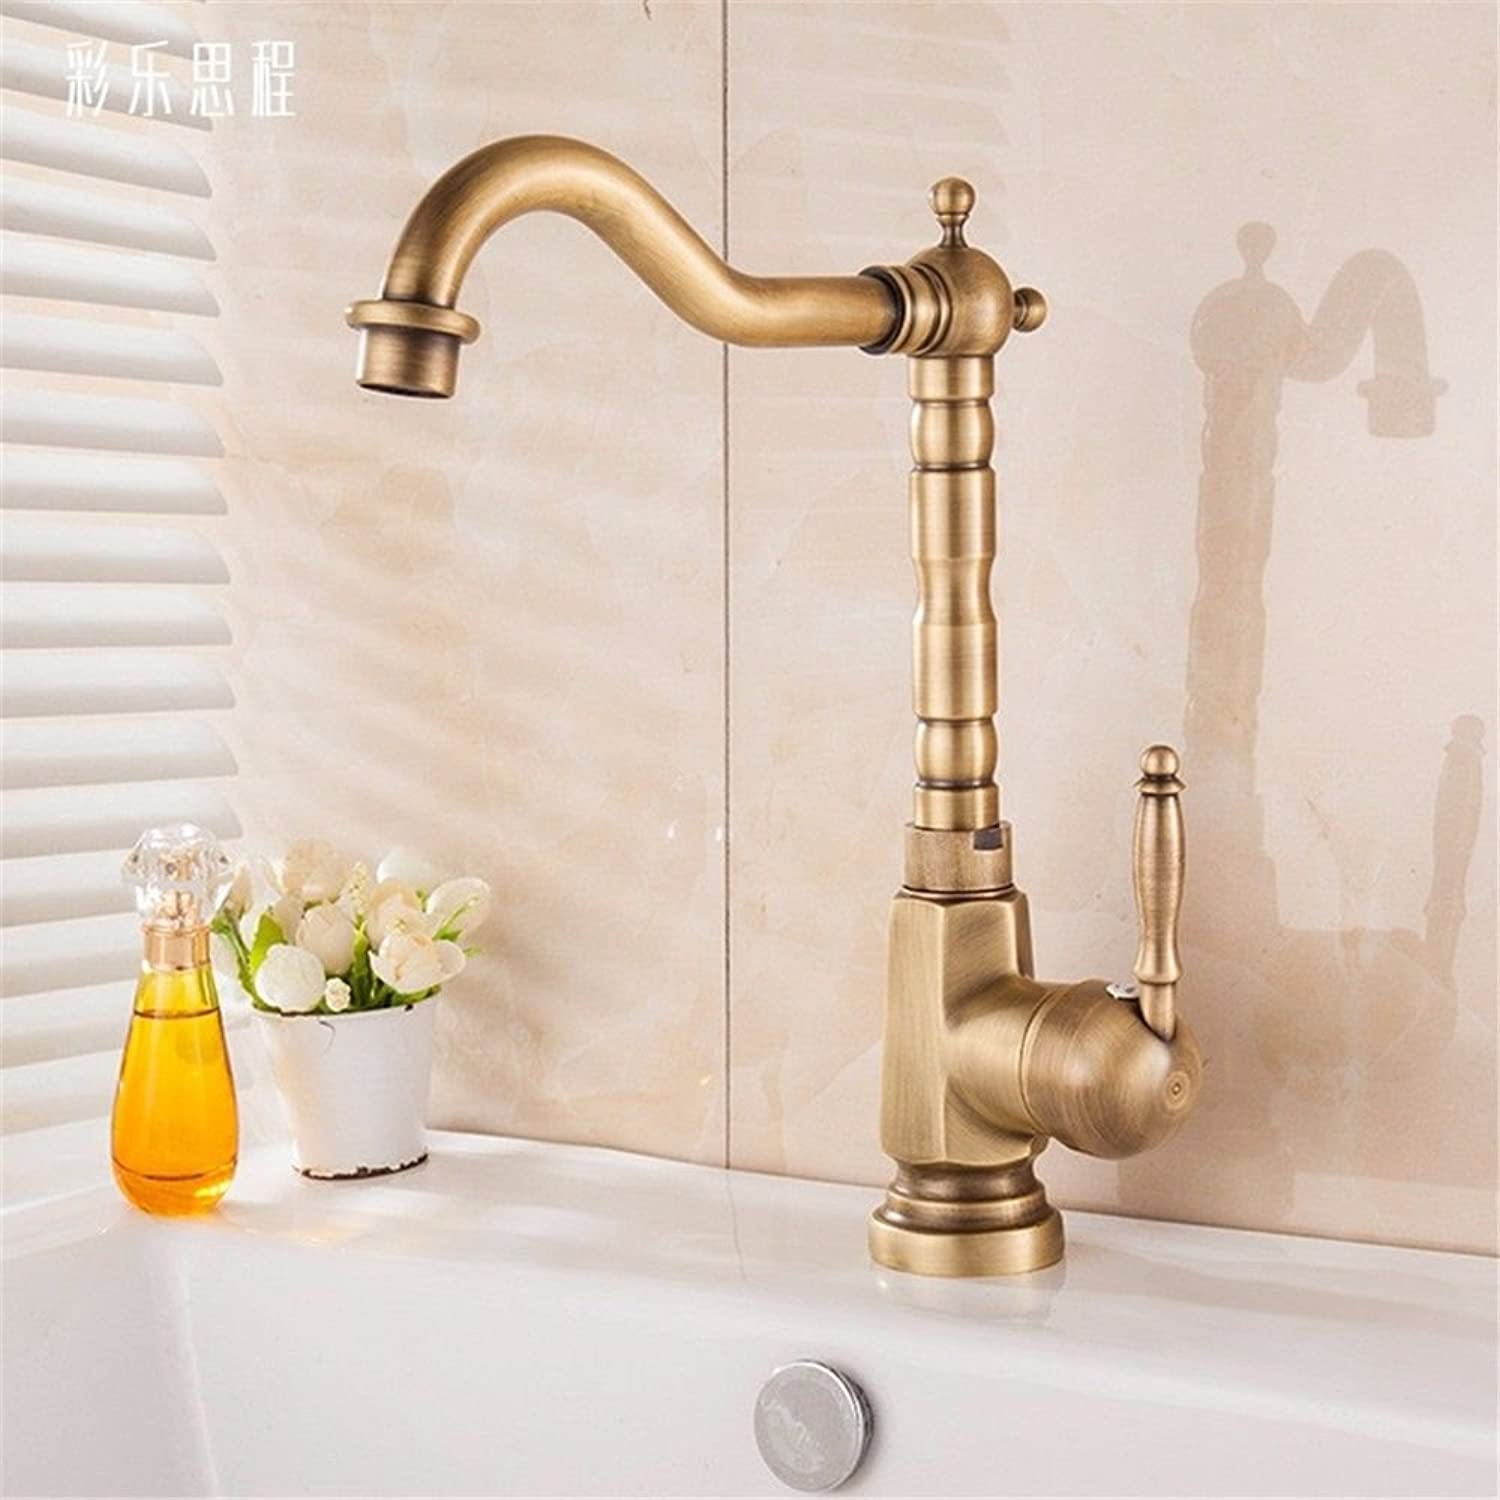 ETERNAL QUALITY Bathroom Sink Basin Tap Brass Mixer Tap Washroom Mixer Faucet All copper single hole retro antique basin with hot and cold high-basin mixer Kitchen Sink T